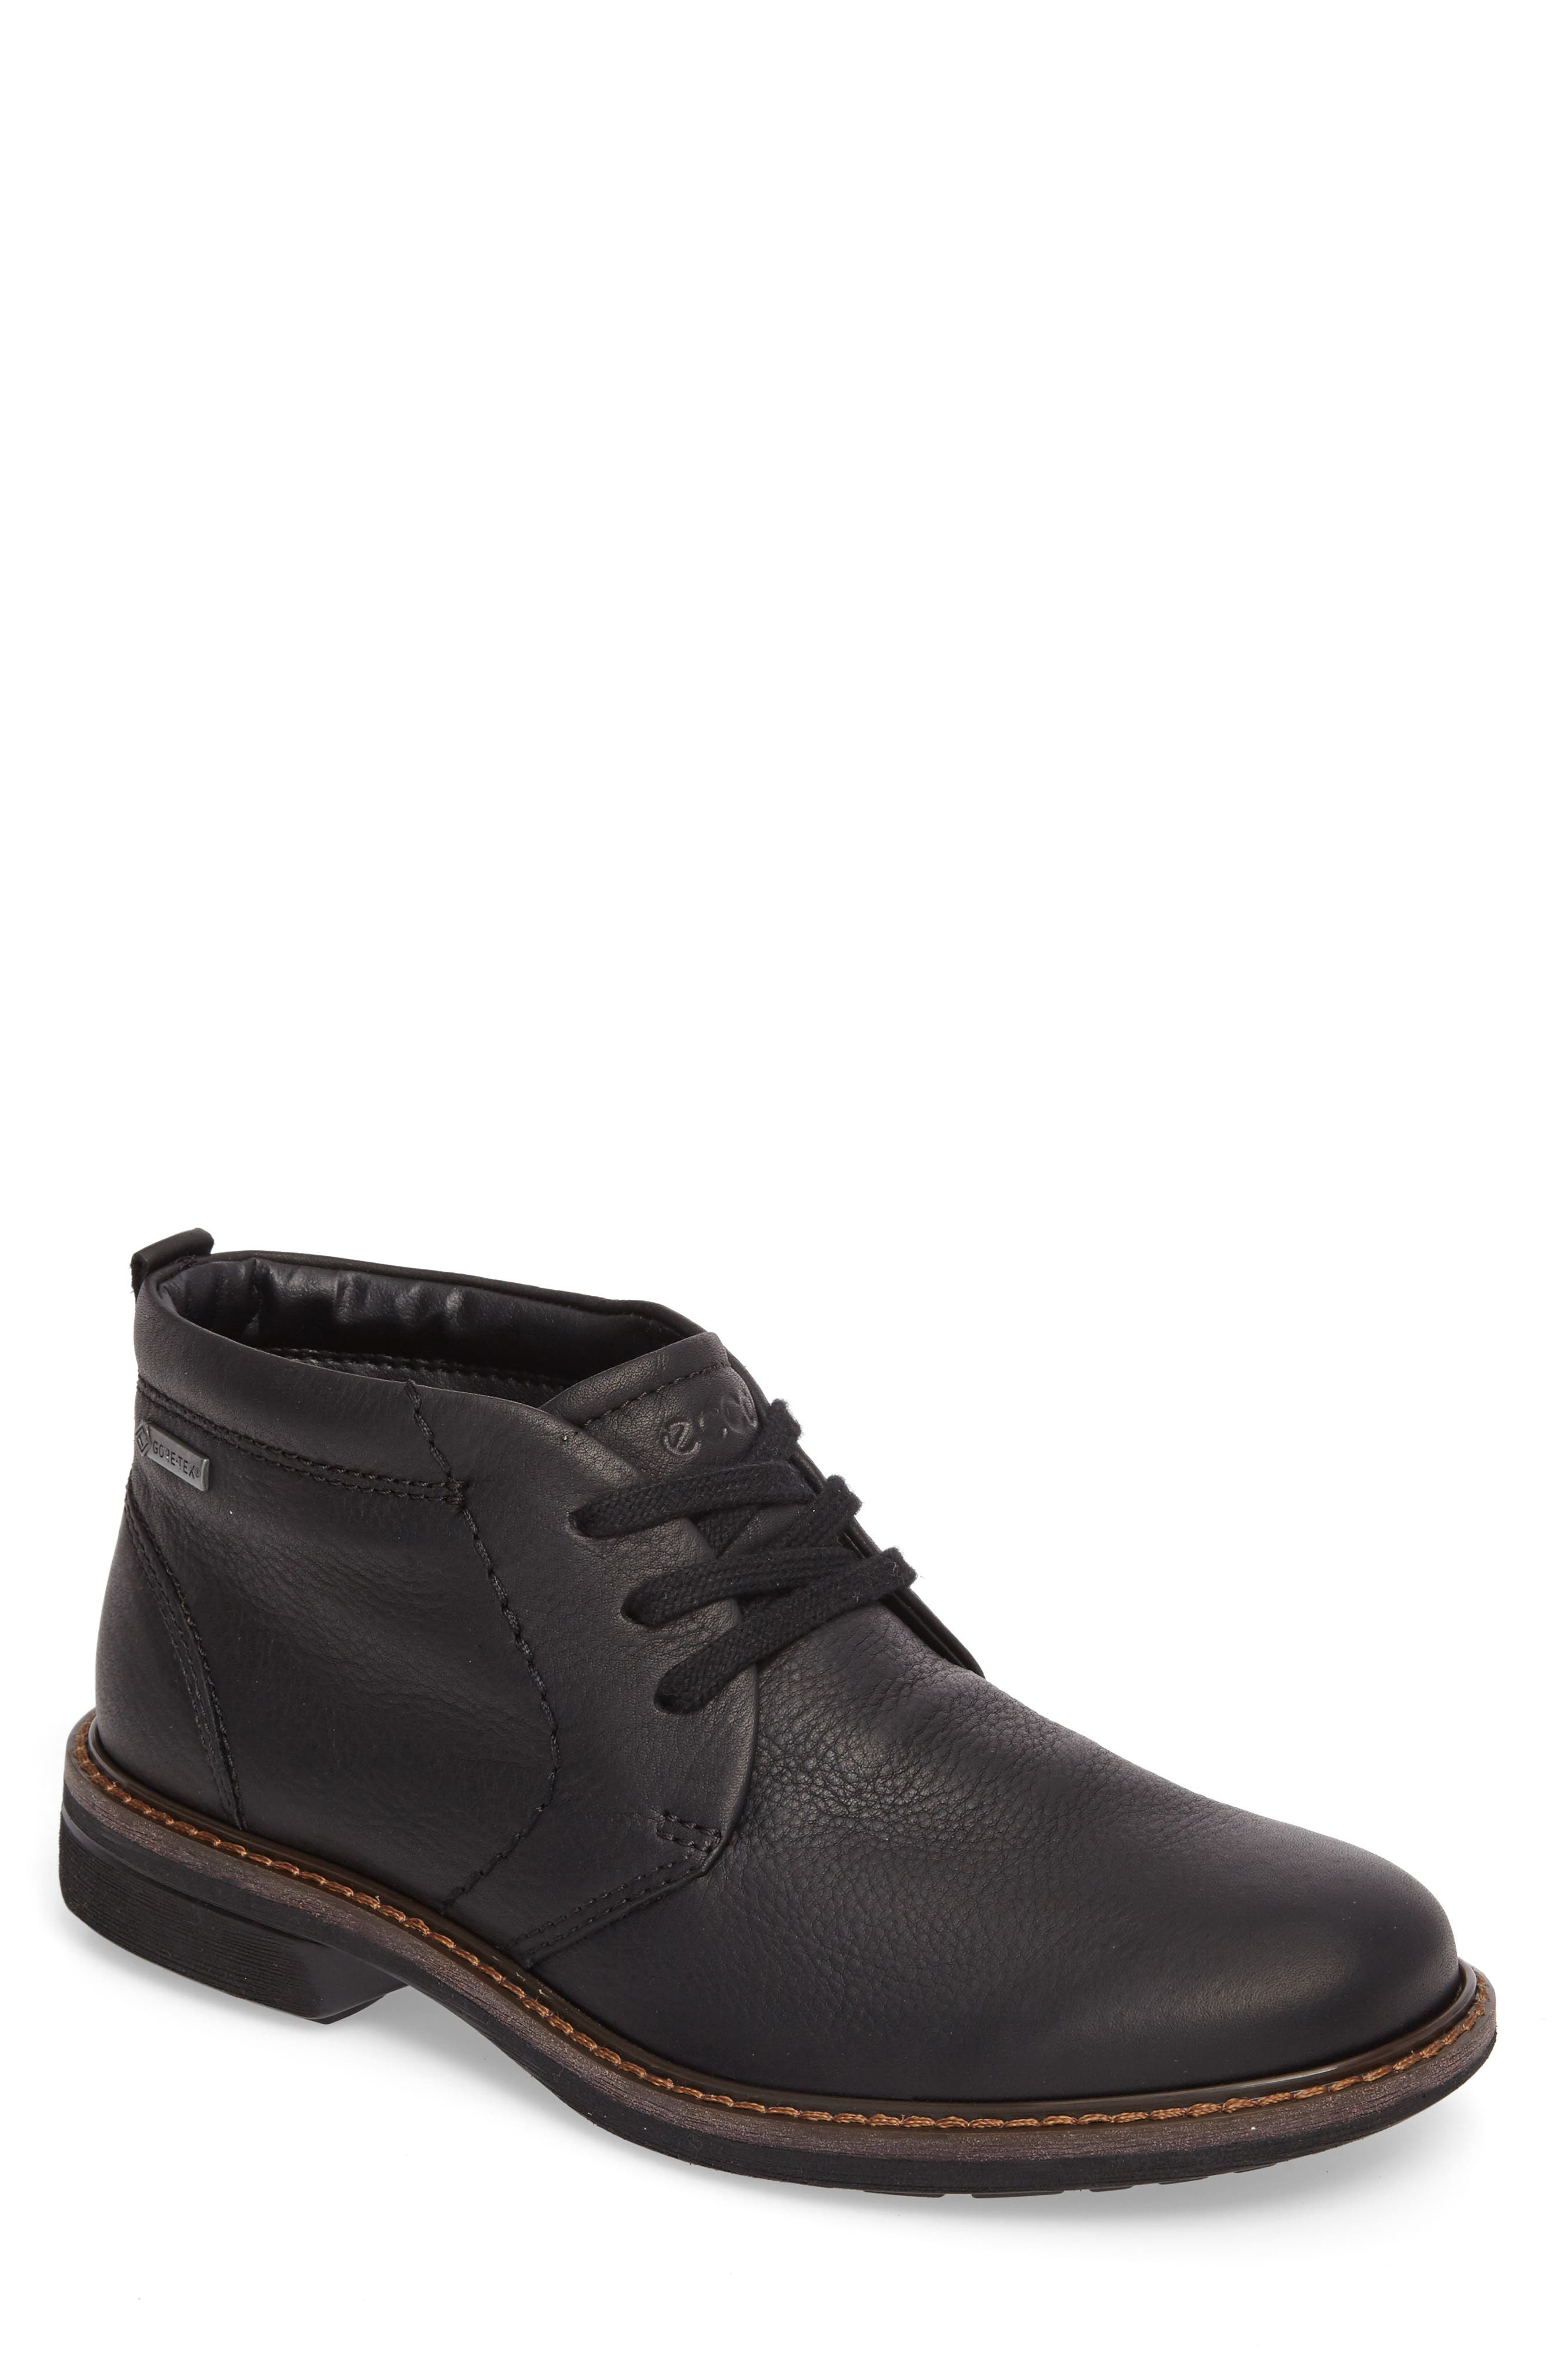 ecco winter boots mens for sale gt off49 discounts